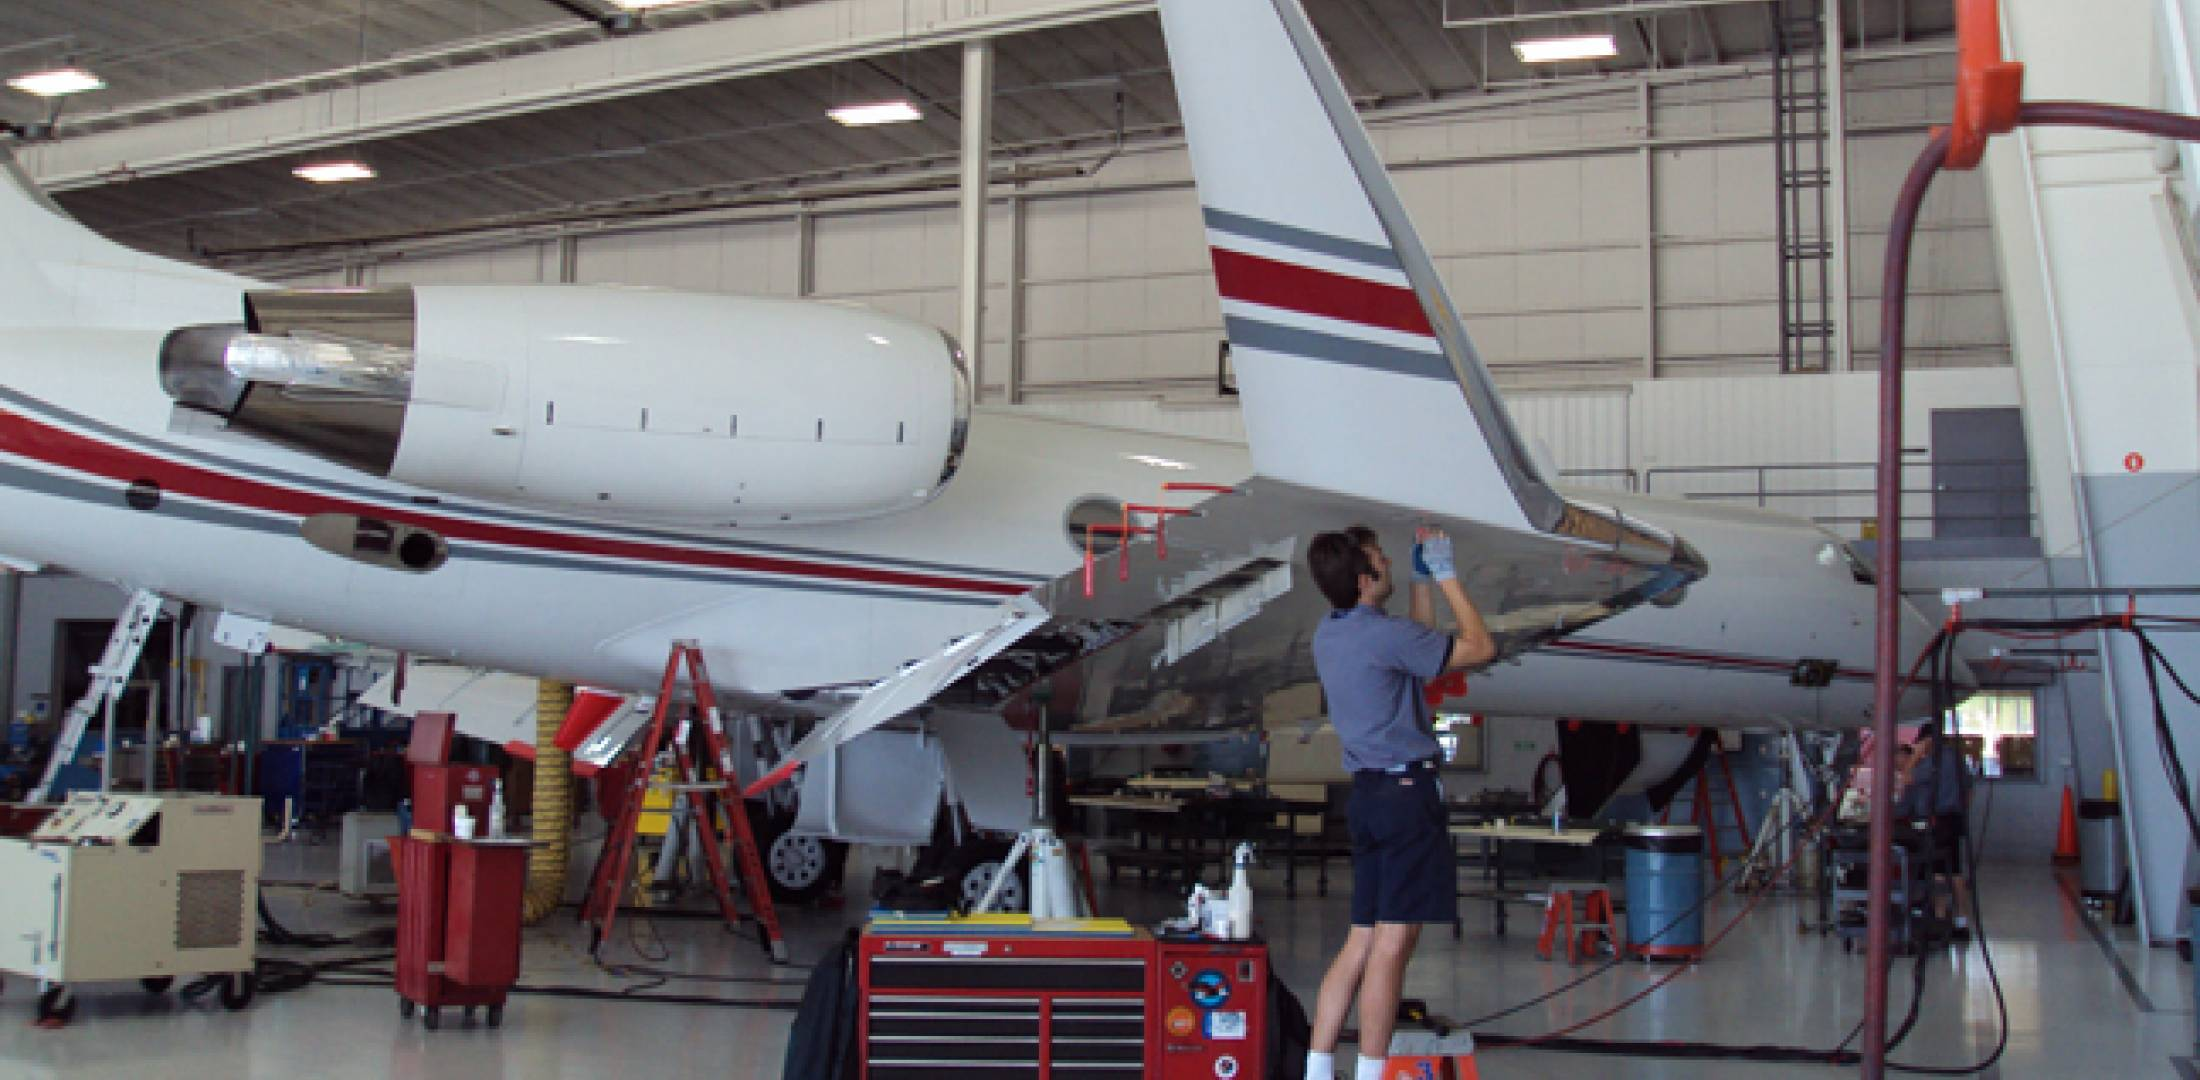 Pentastar Aviation is now offering MRO services out of a 20,000-sq-ft facility at Key Air at Waterbury-Oxford Airport.